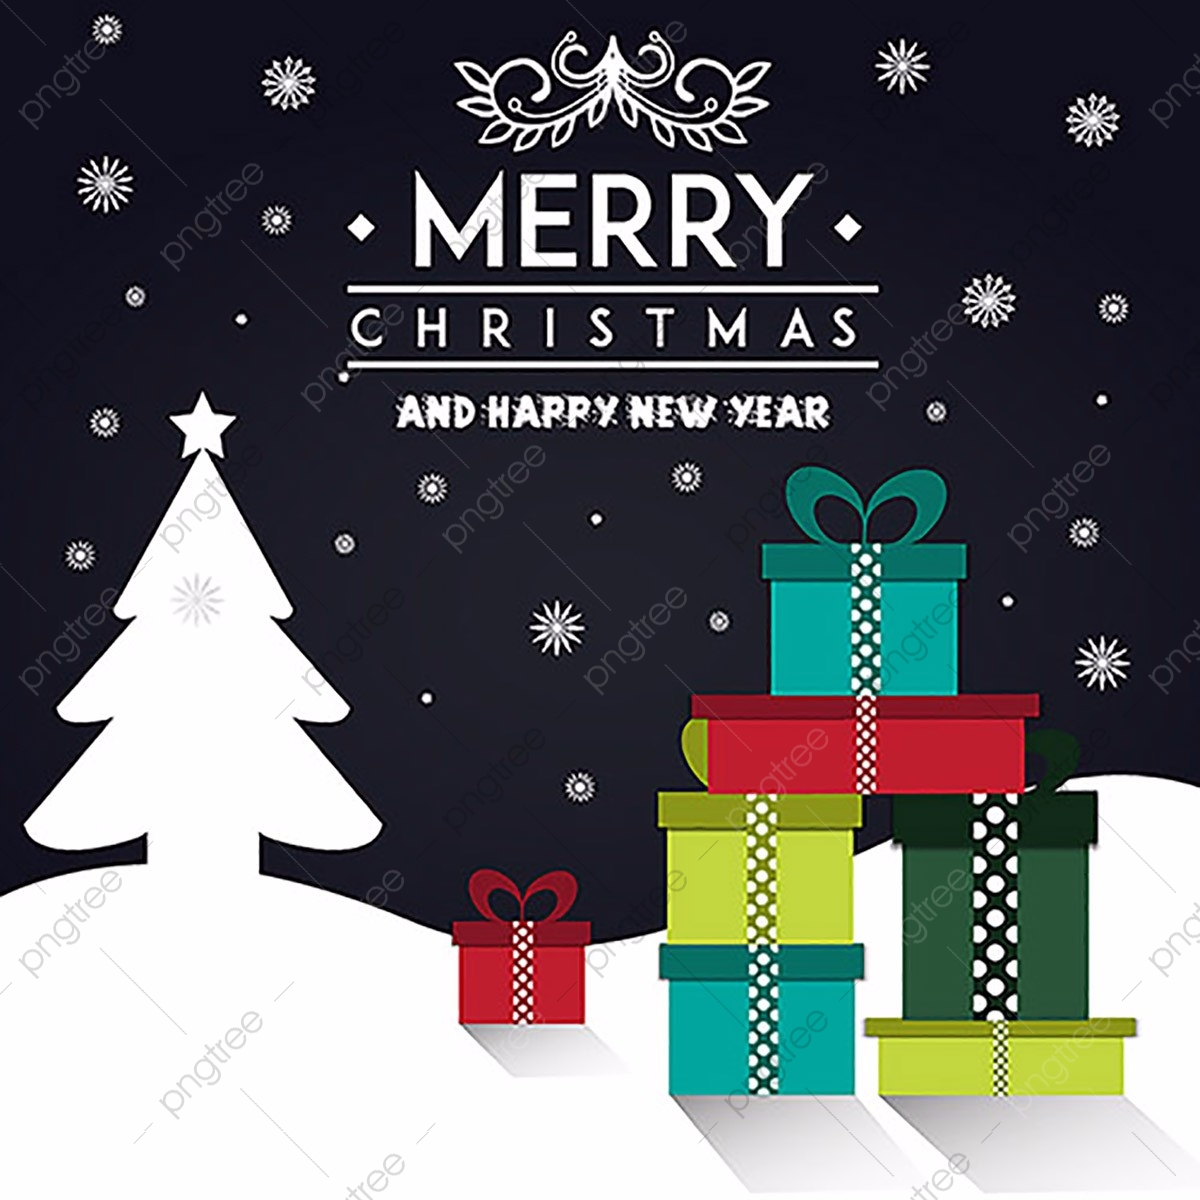 Christmas Backgrounds Free.Simple Vector Christmas Backgrounds Christmas Vector